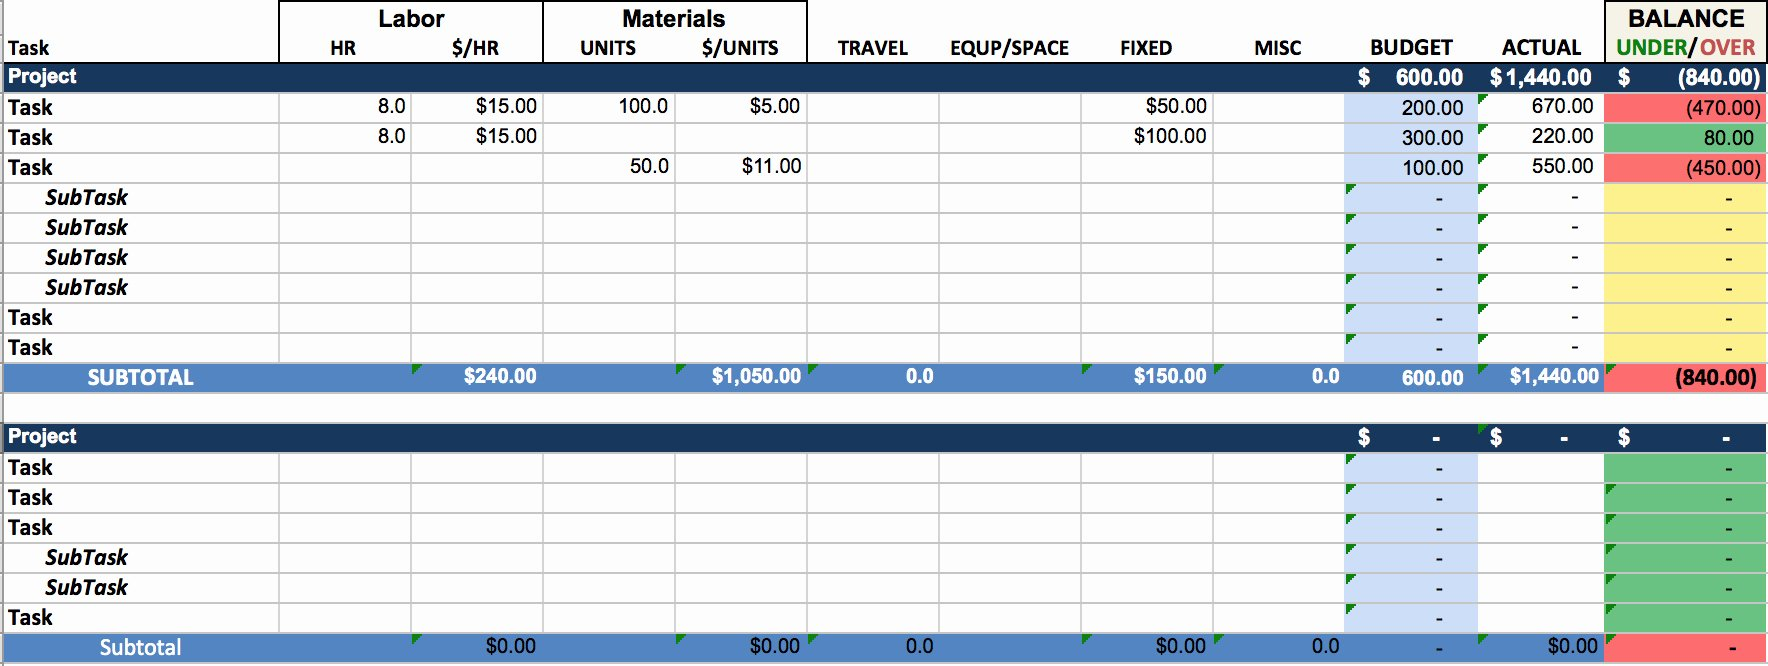 Applicant Tracking Spreadsheet Template New Job Application Tracker Spreadsheet for Applicant Tracking